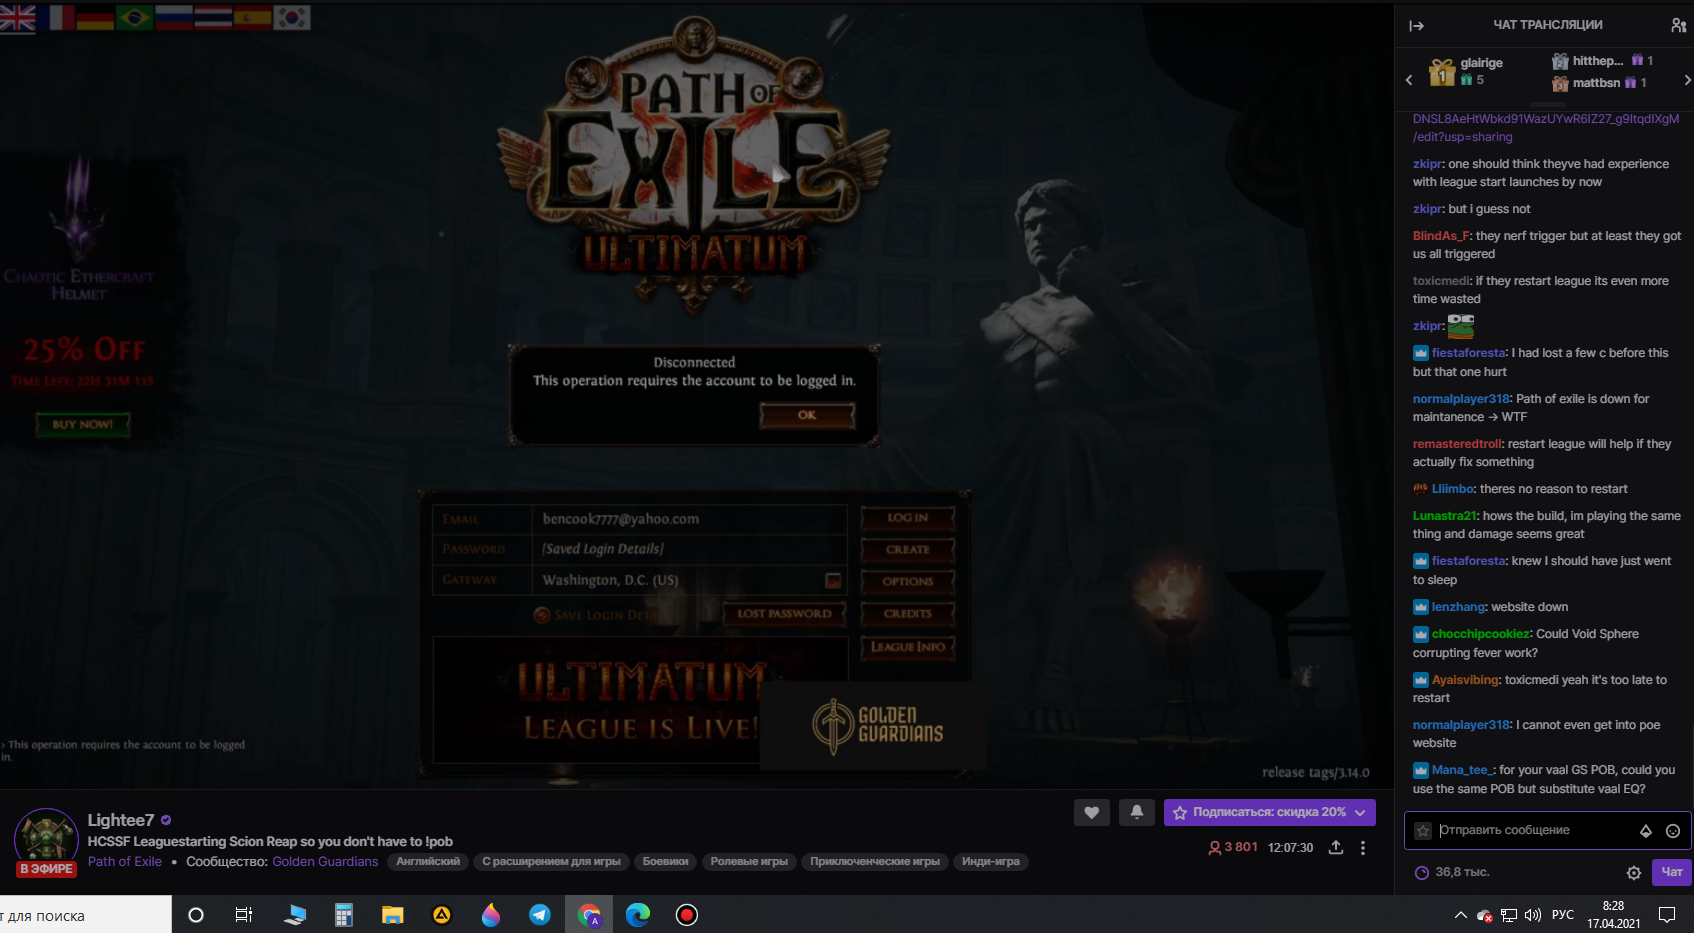 1 | Path of exile